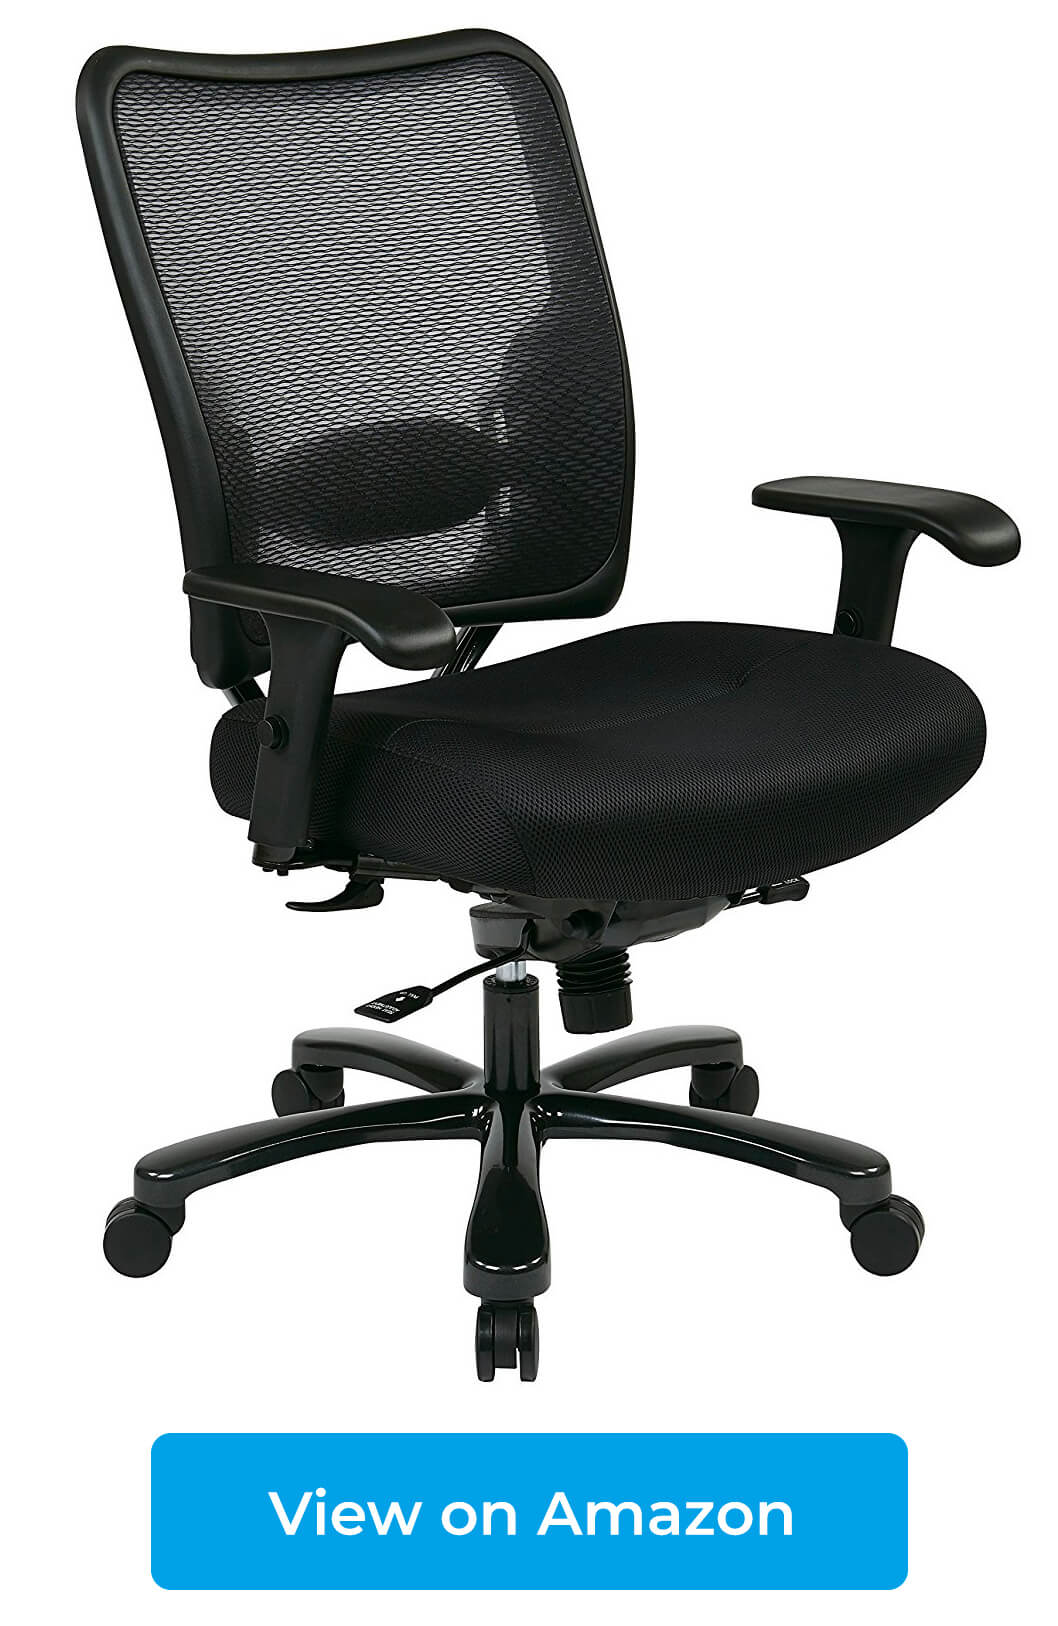 Ordinaire Space Seating Office Chair Is Great High Quality Herman Miller Aeron  Alternative